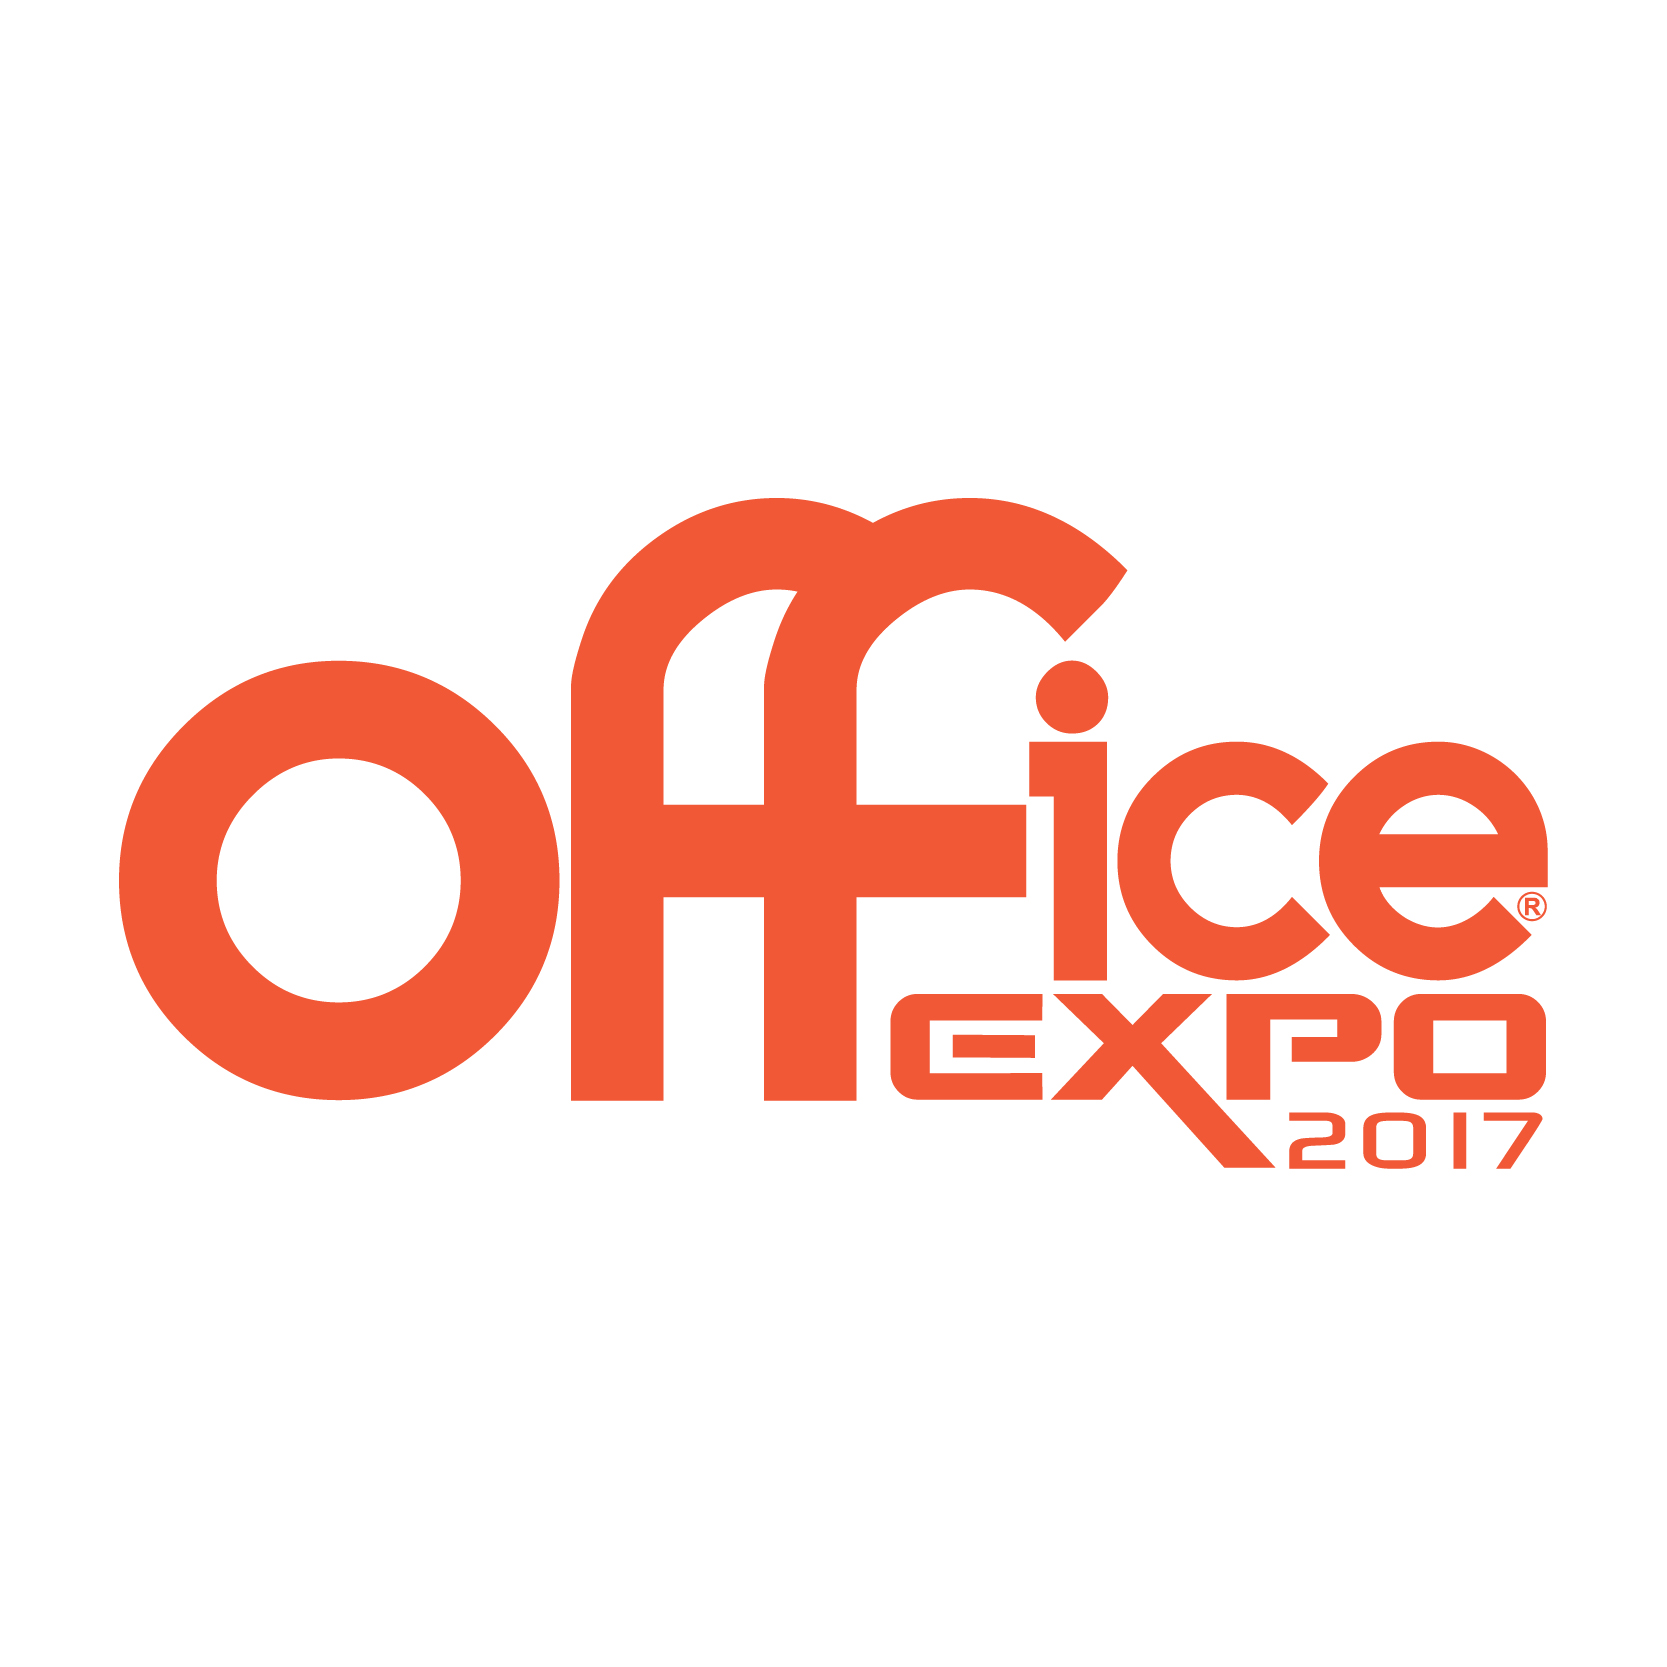 The Office Expo 2017